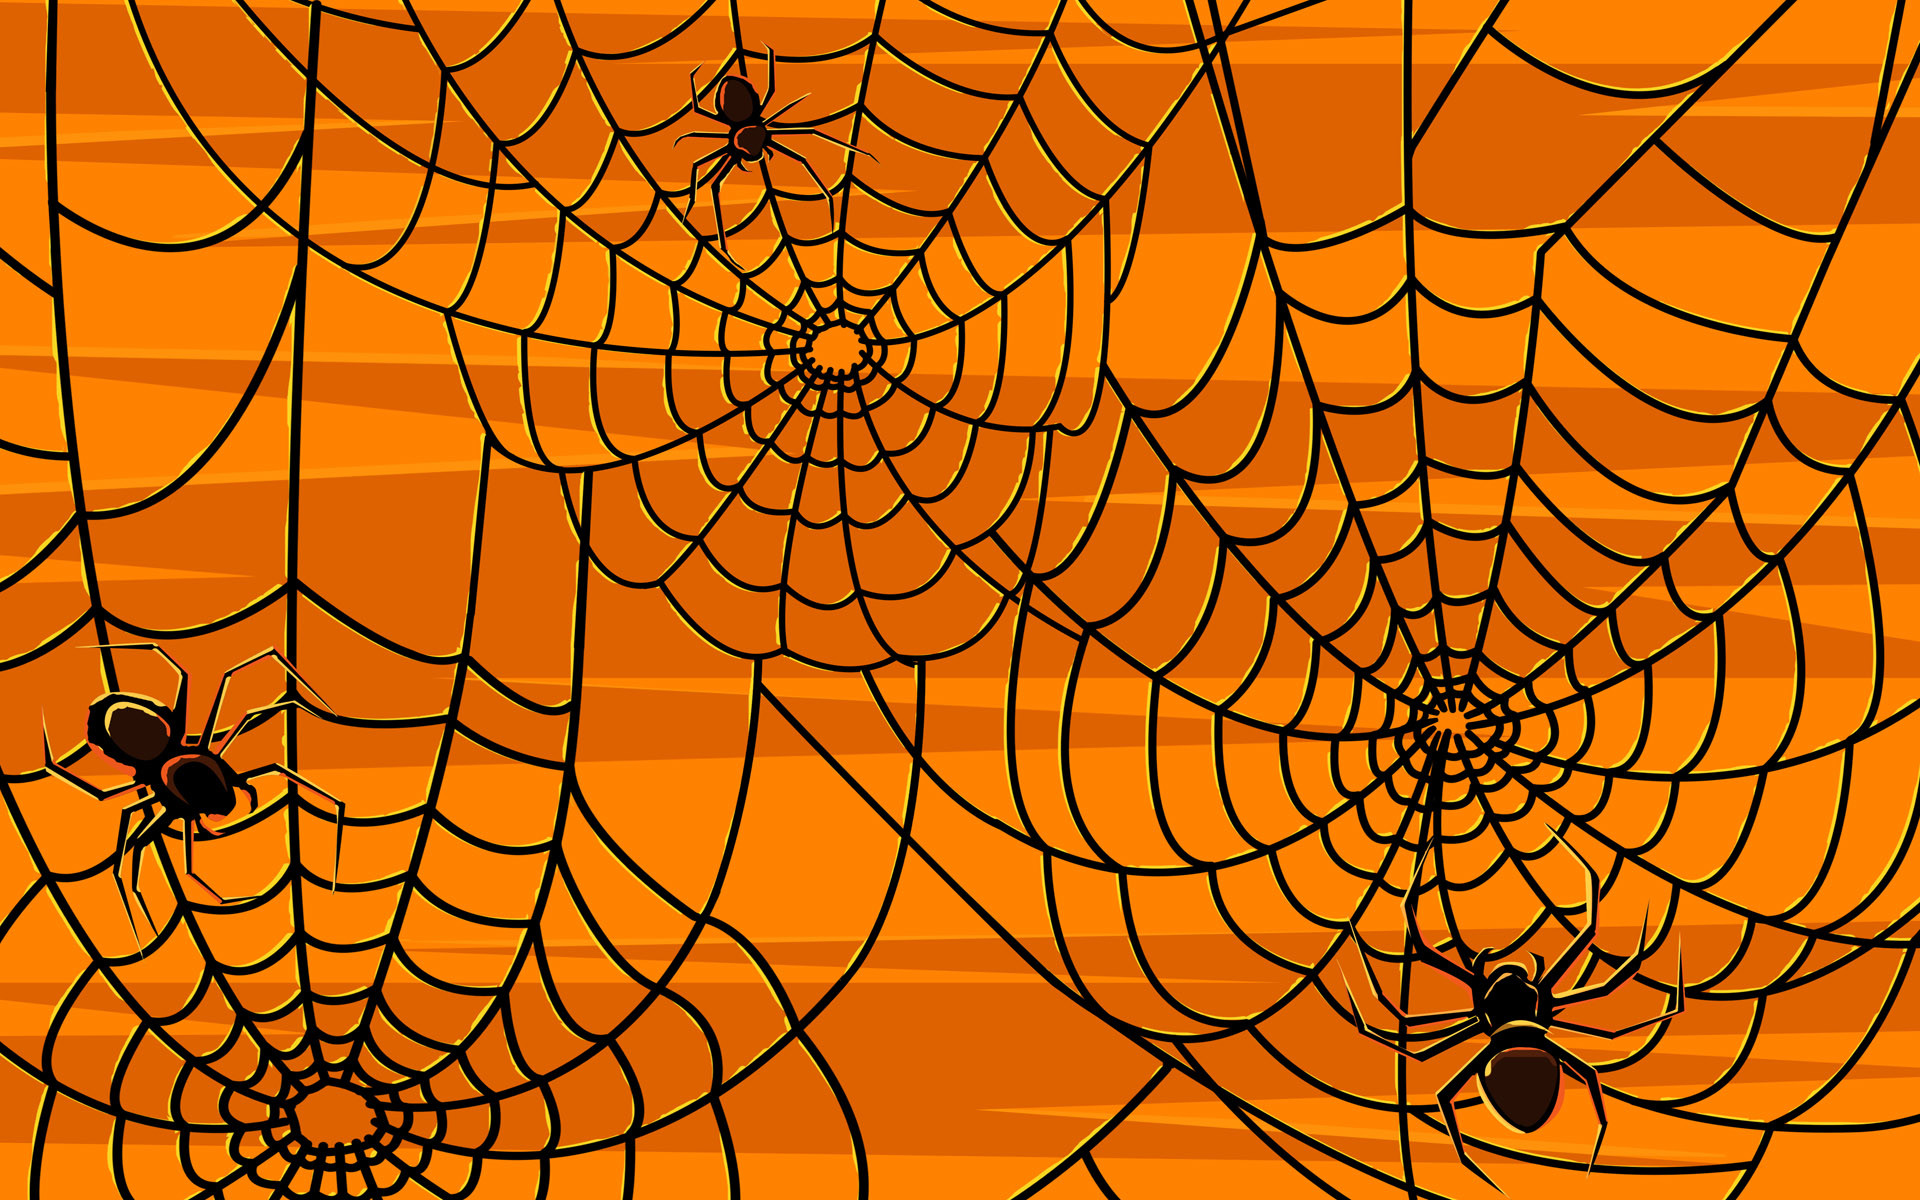 45 Scary Halloween 2012 HD Wallpapers | Pumpkins, Witches, Spider Web .